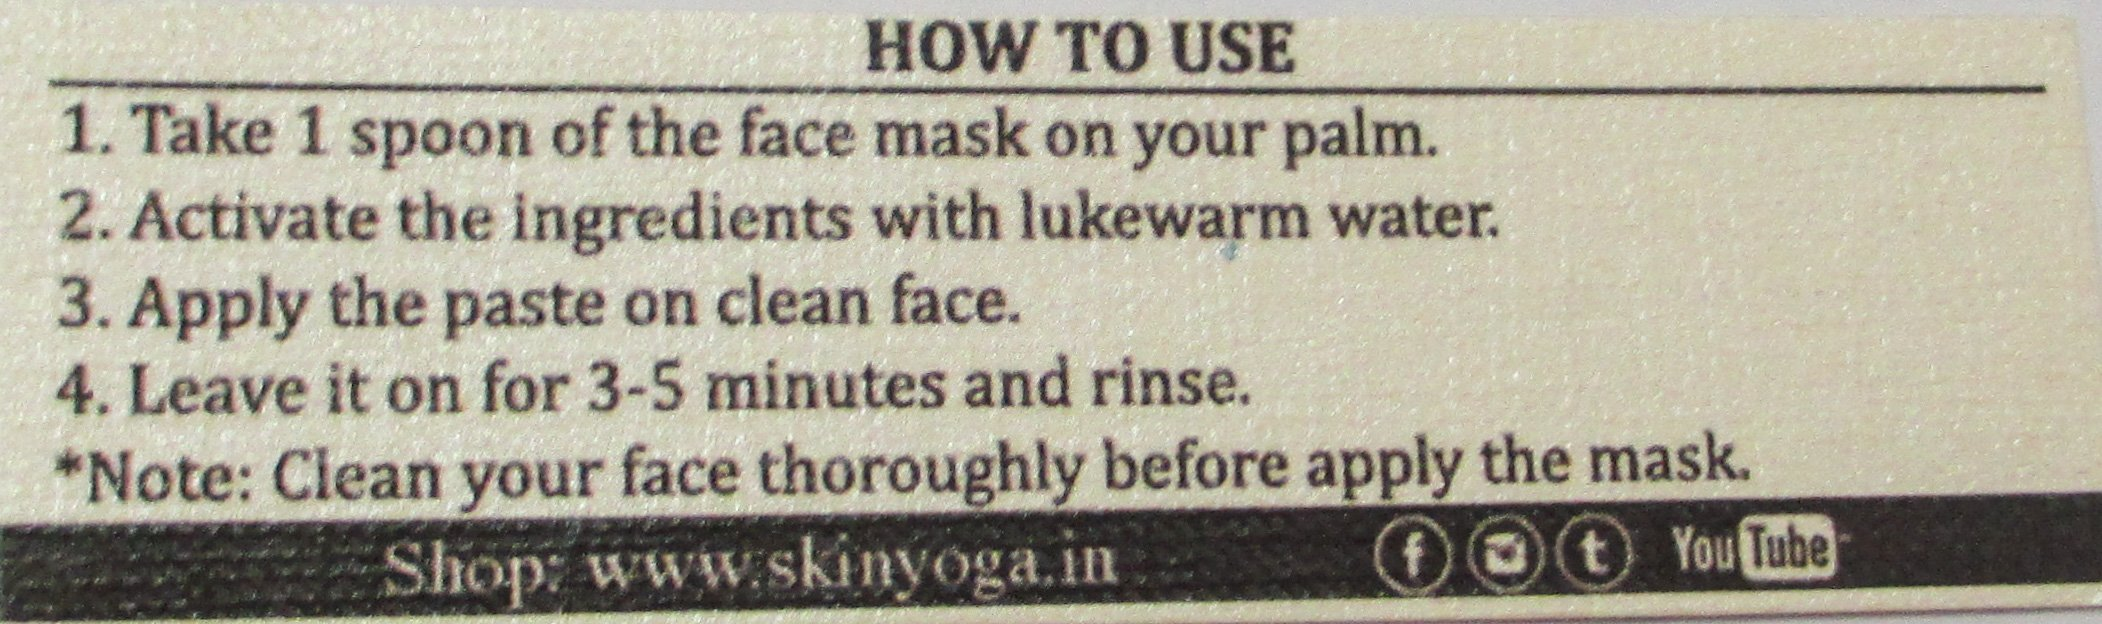 How to use Skin Yoga Green Tea Face Mask